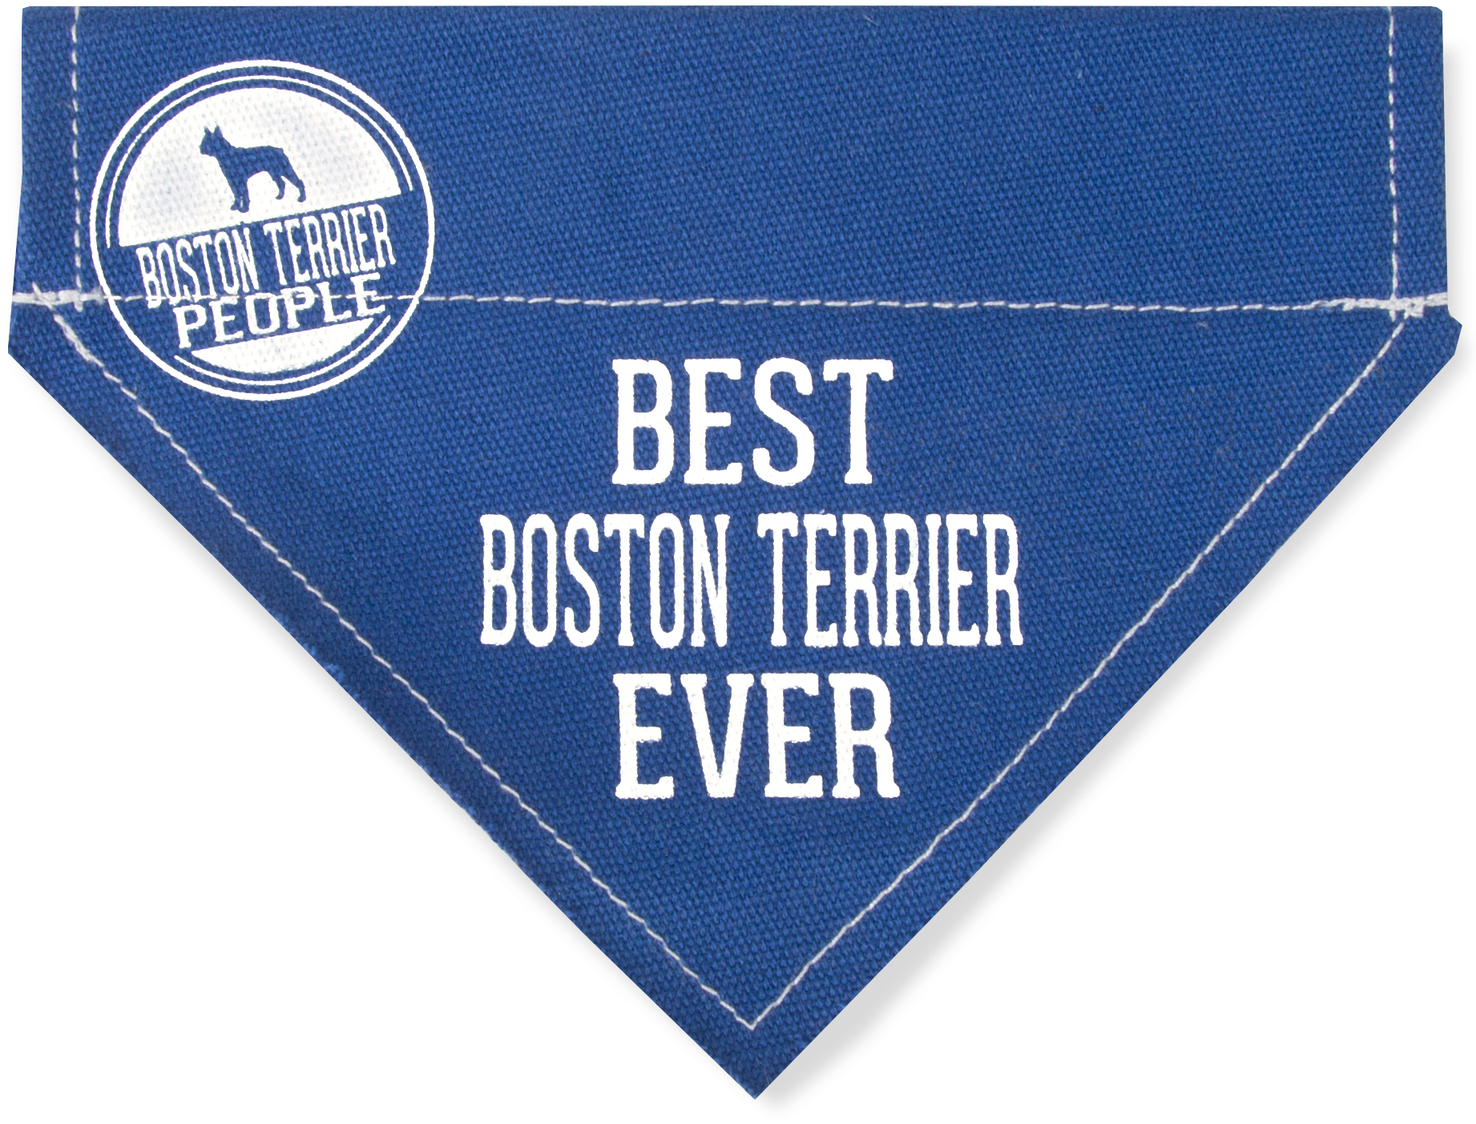 "Best Boston Terrier by We Pets - Best Boston Terrier - 7"" x 5"" Canvas Slip on Pet Bandana"